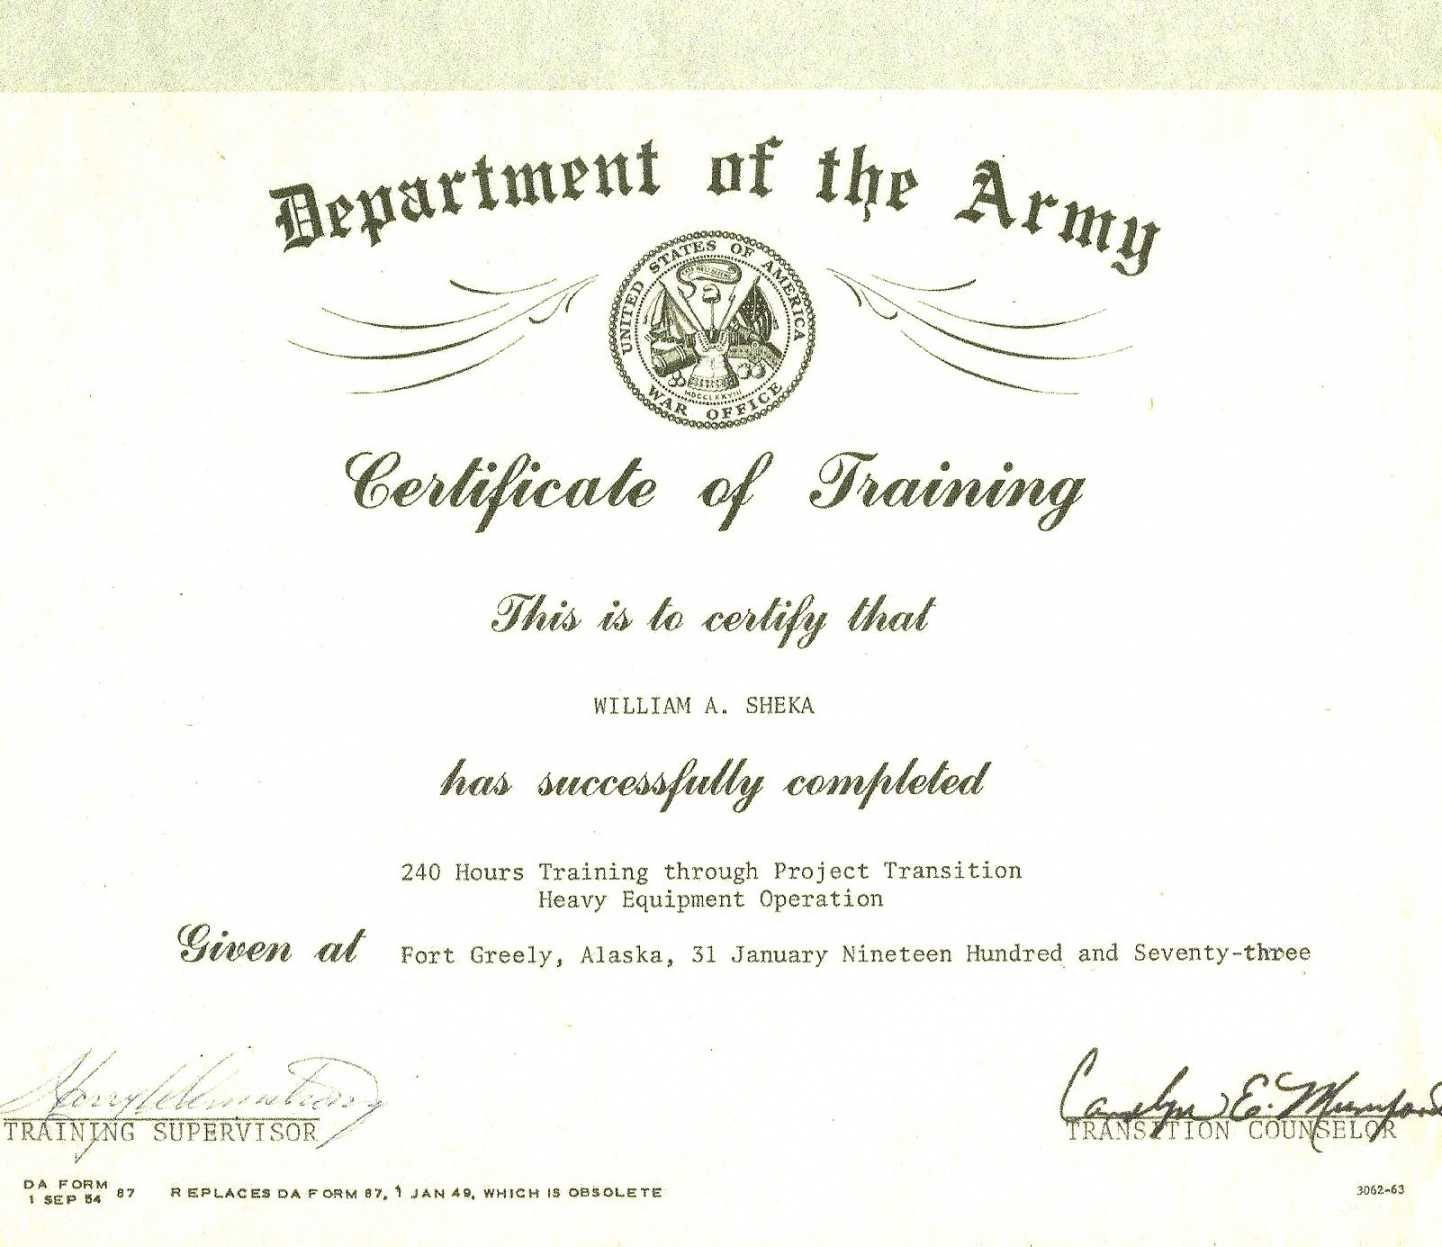 Army Certificate Of Training Template - Karan.ald2014 Inside Army Certificate Of Appreciation Template